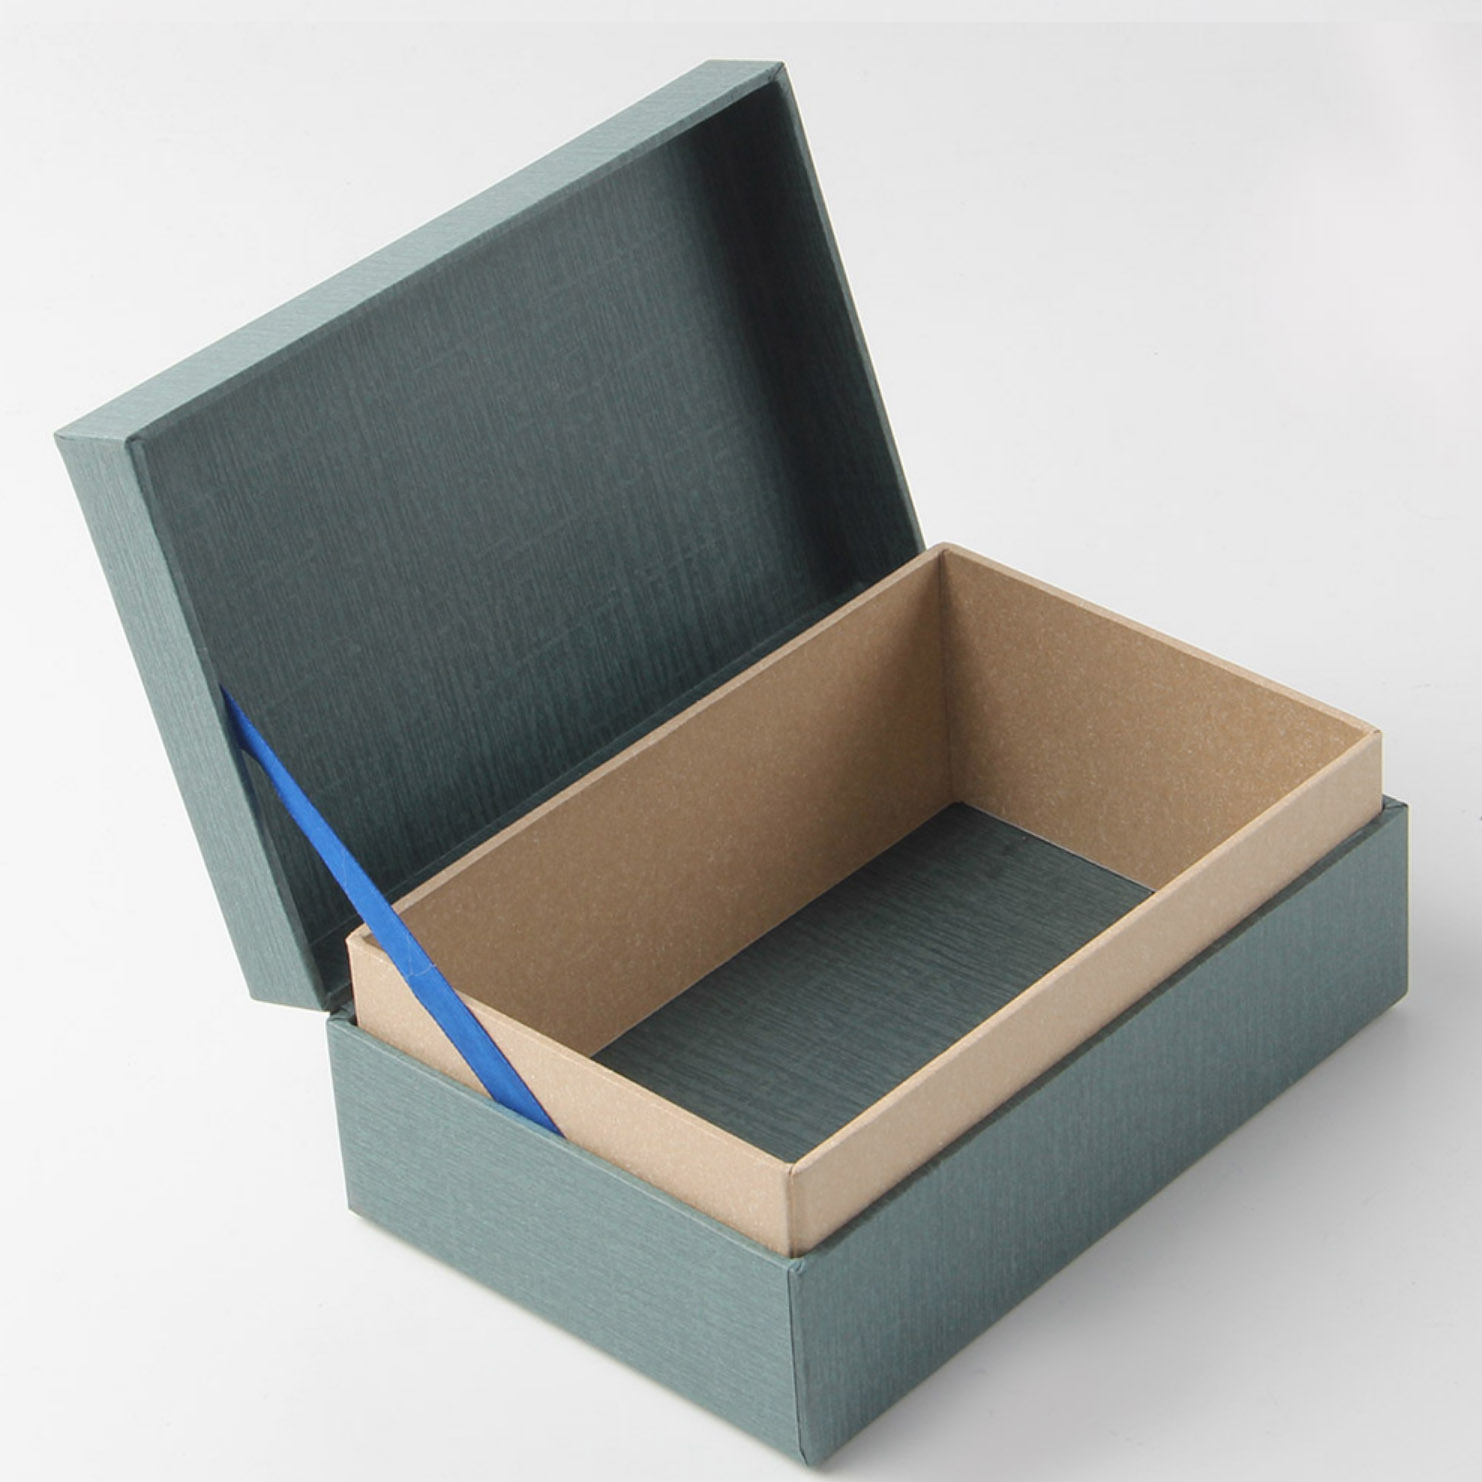 Handmade luxury paper box